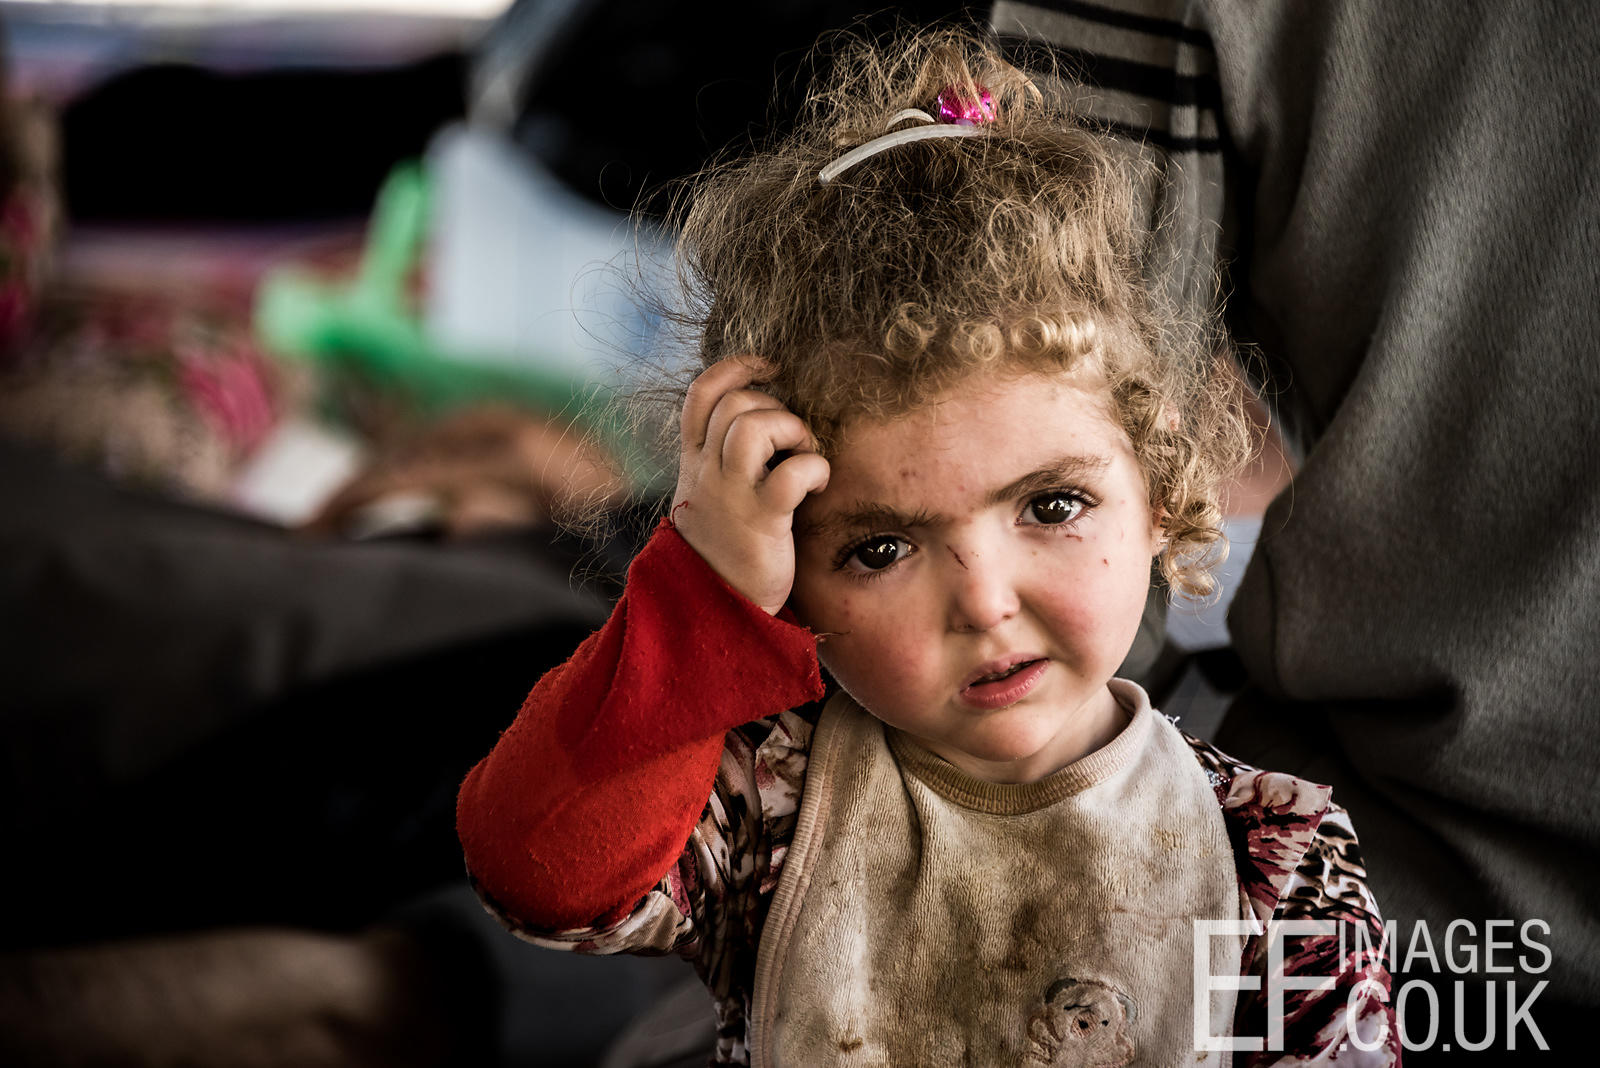 Confused little girl resting at a civilian muster point outside the Tammuz district of West Mosul having escaped ISIS and coalition forces bombardment with her family that morning. May 2017